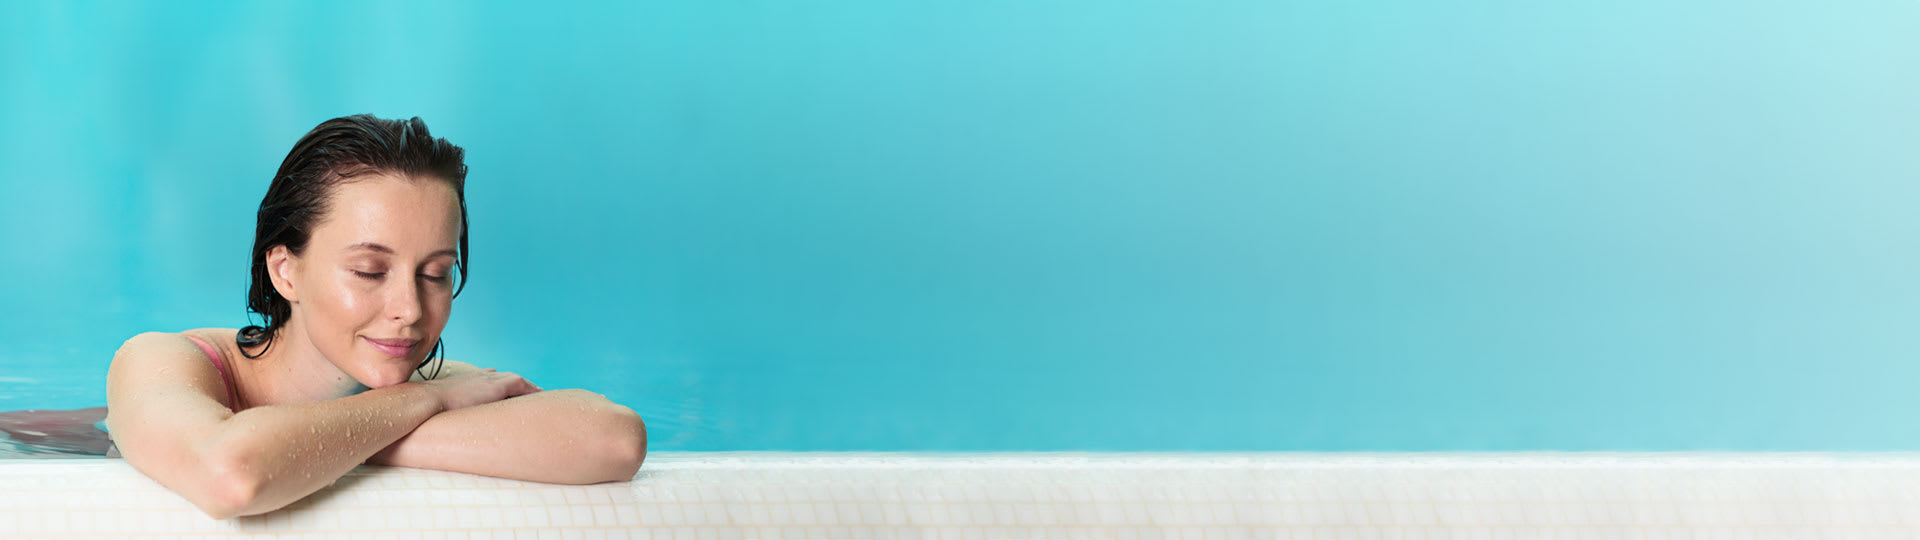 A woman relaxing in a blue pool